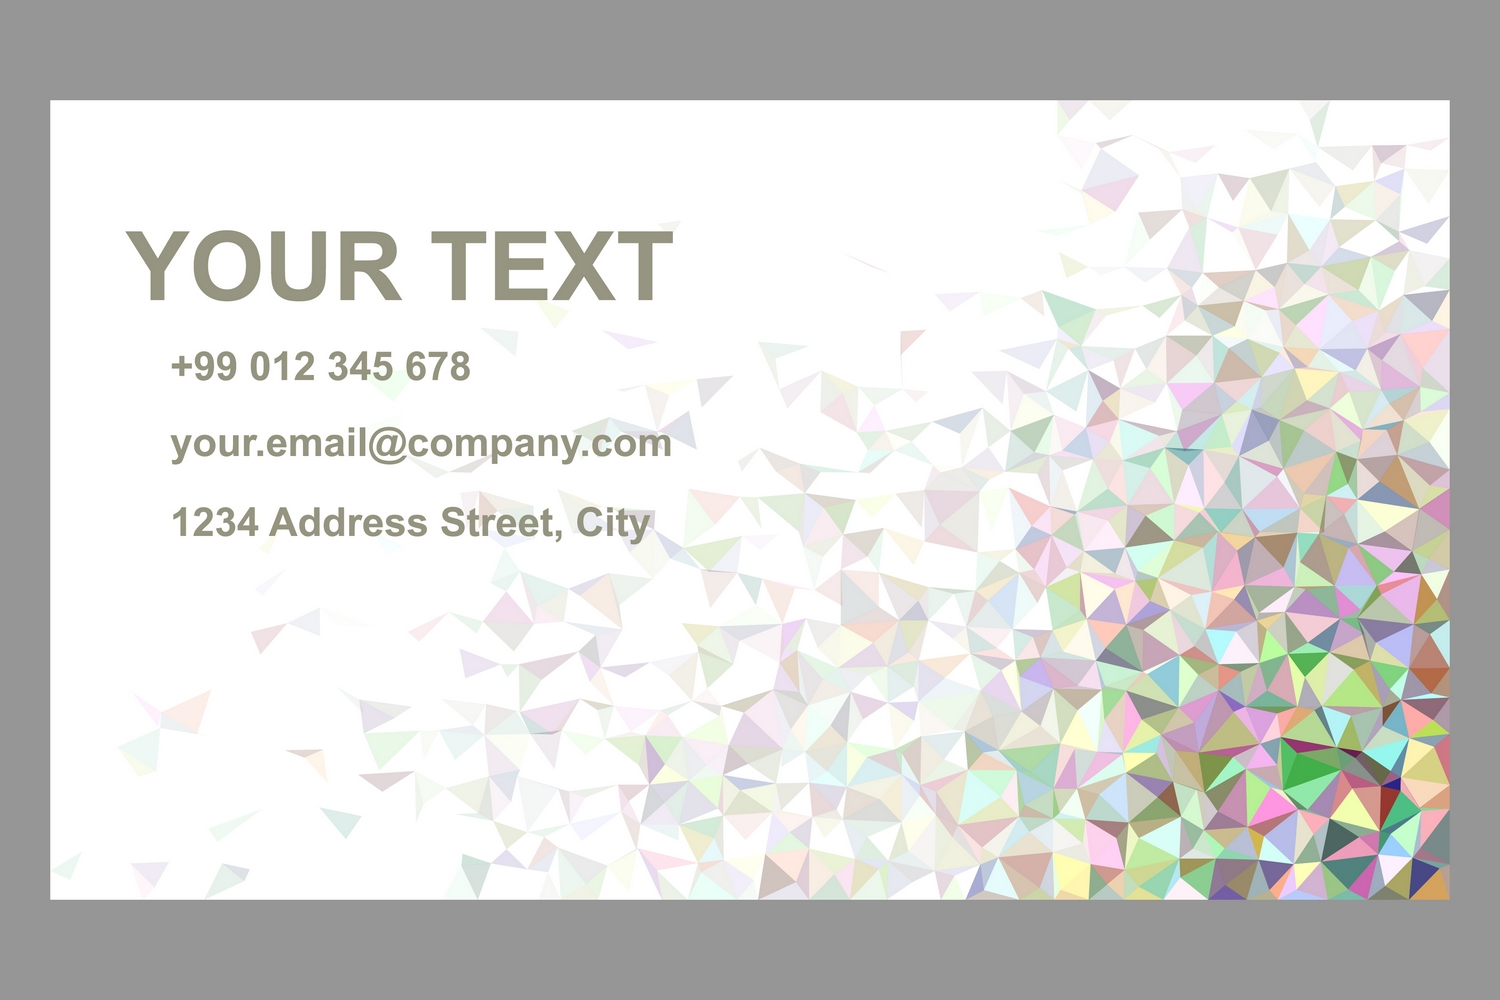 50x2 mosaic design business card templates (EPS, AI, JPG 5000x5000) example image 2